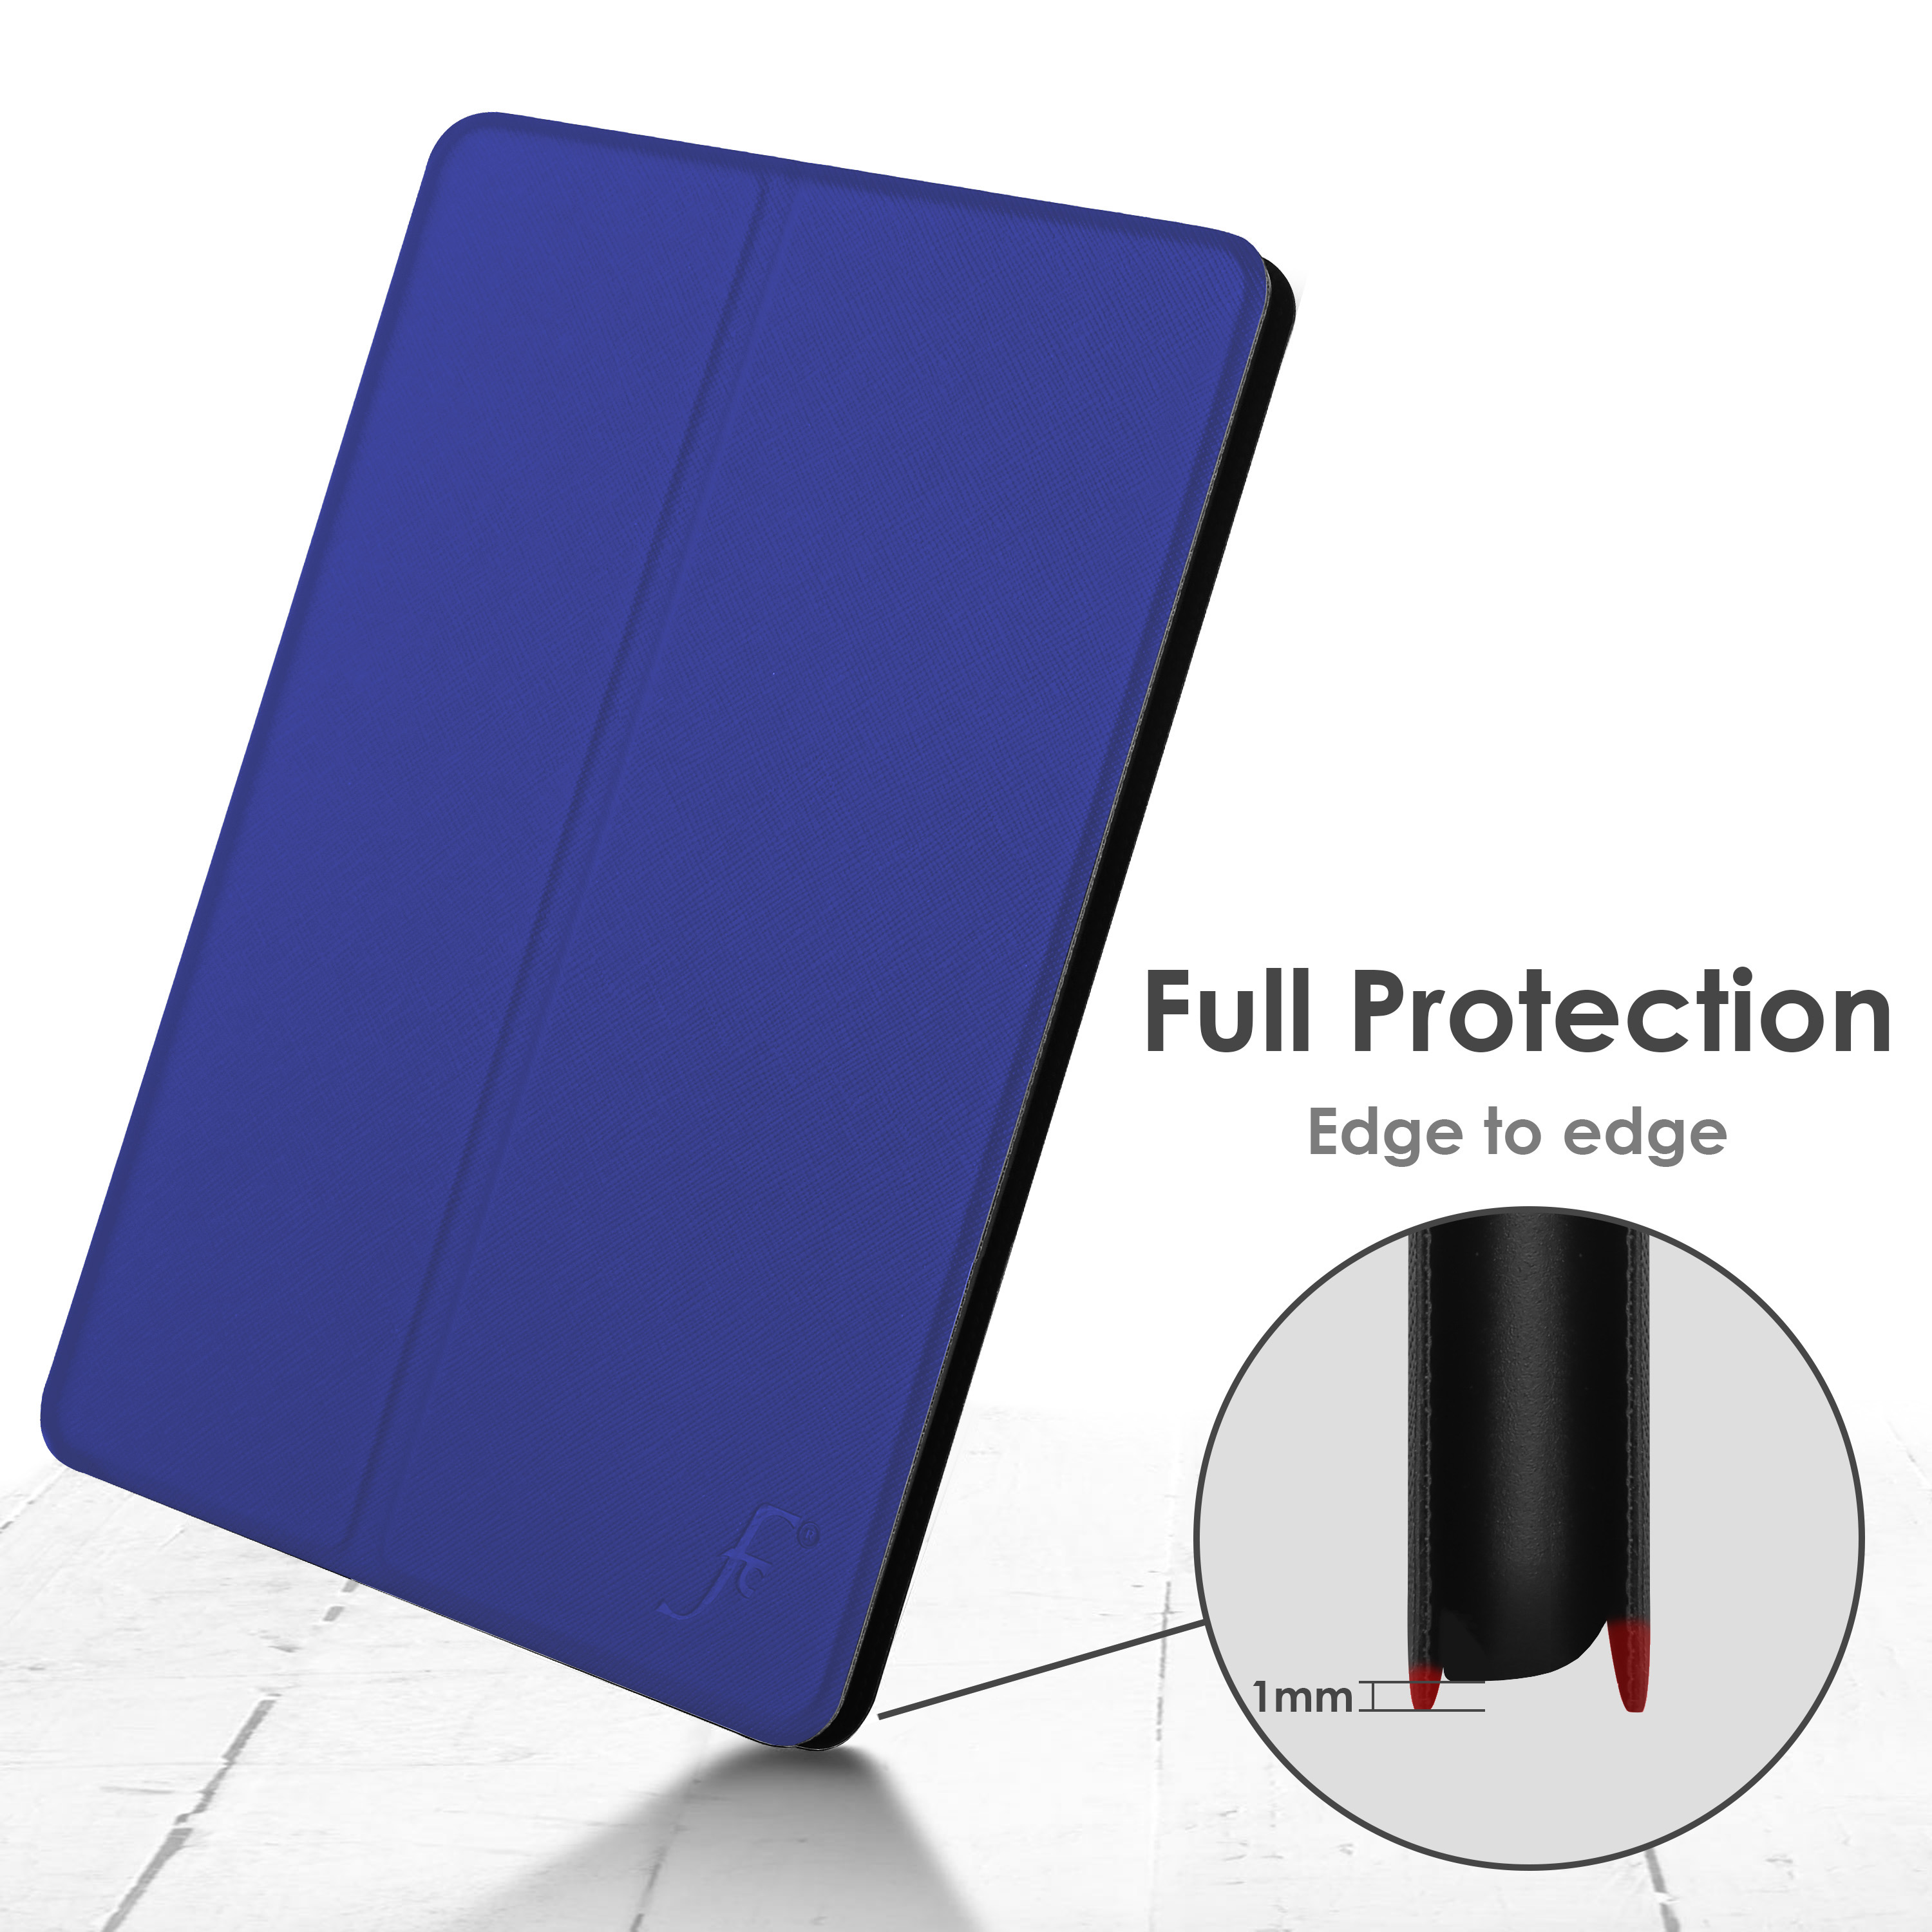 miniature 86 - Samsung Galaxy Tab A 10.1 2019 Étui Magnétique Protection & Support + Stylet